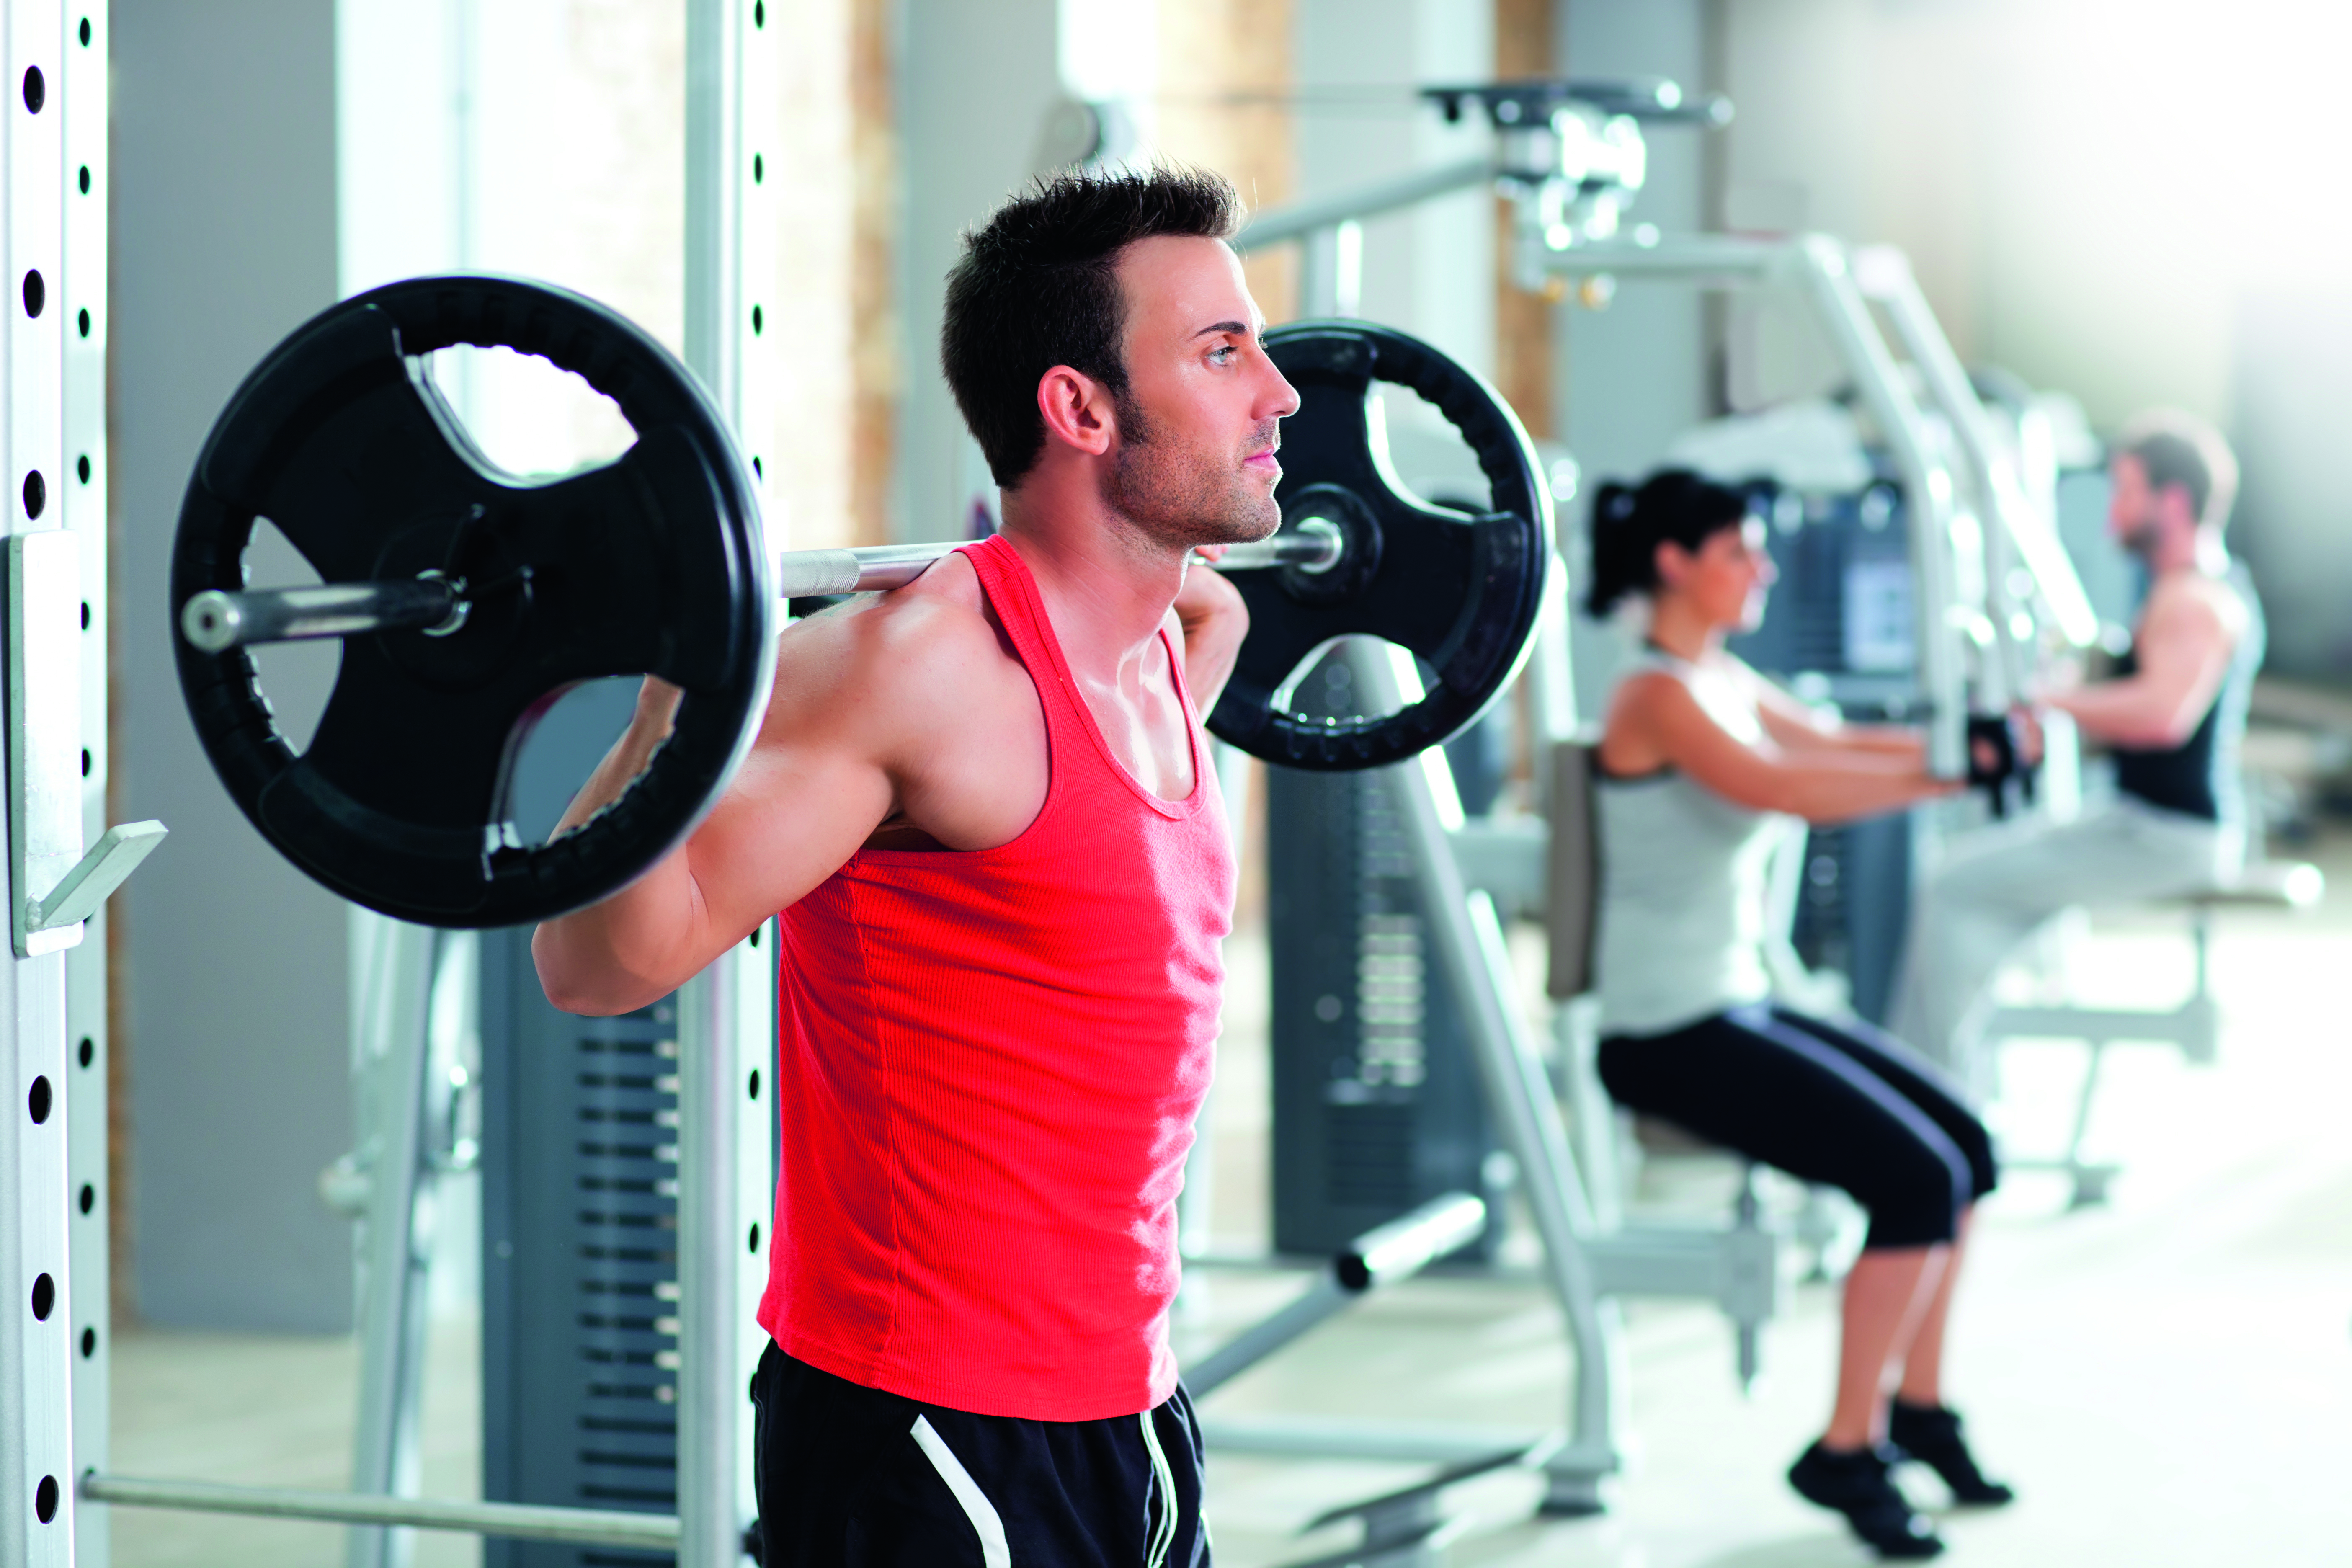 Start your career as a personal trainer with www.ymcafit.org.uk